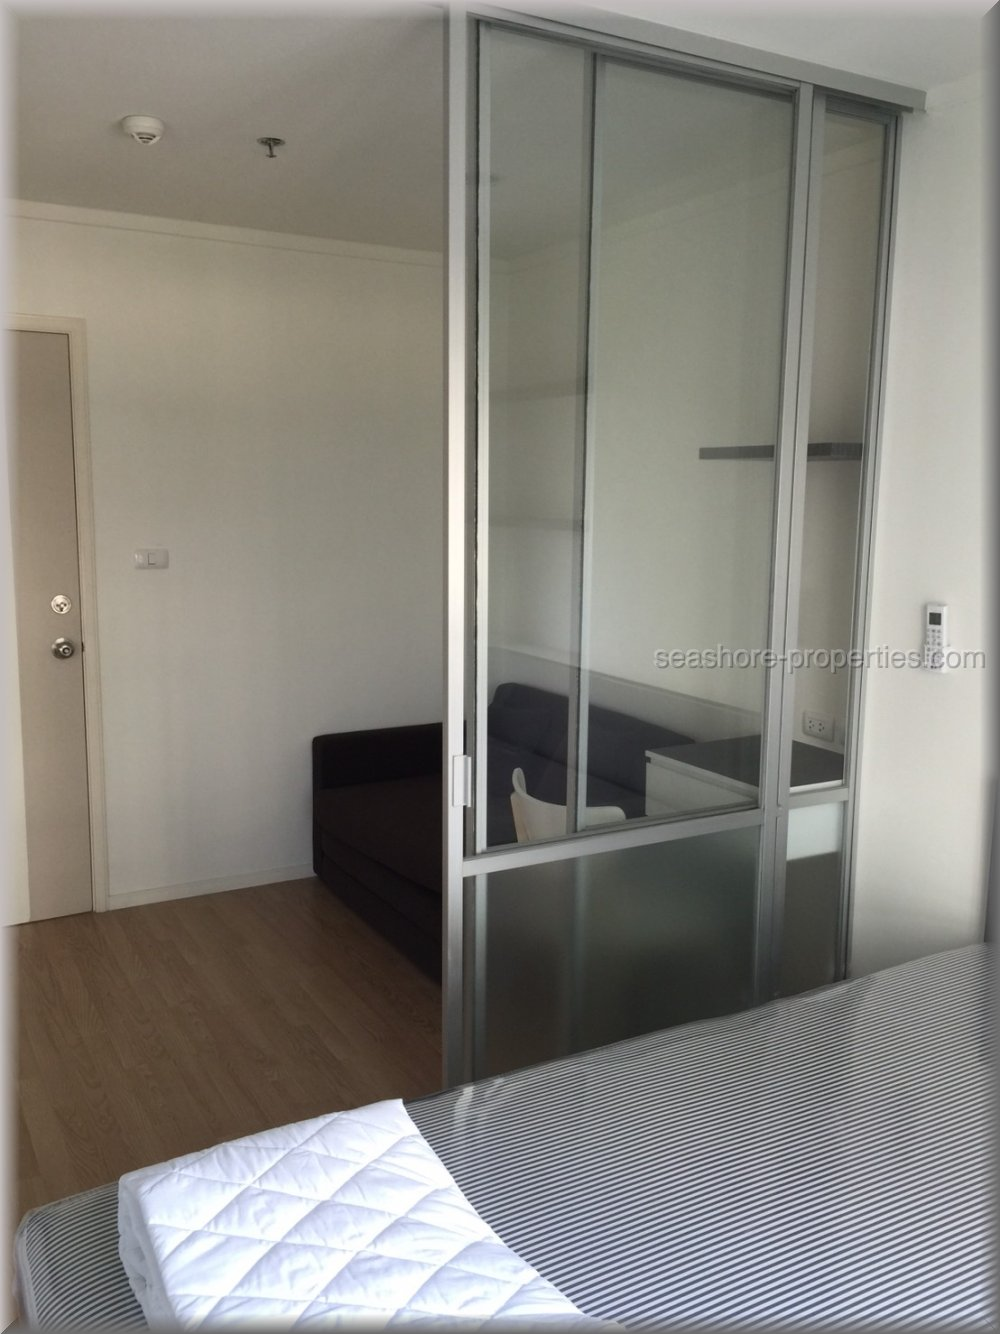 lumpini wong amat  Condominiums to rent in Wong Amat Pattaya